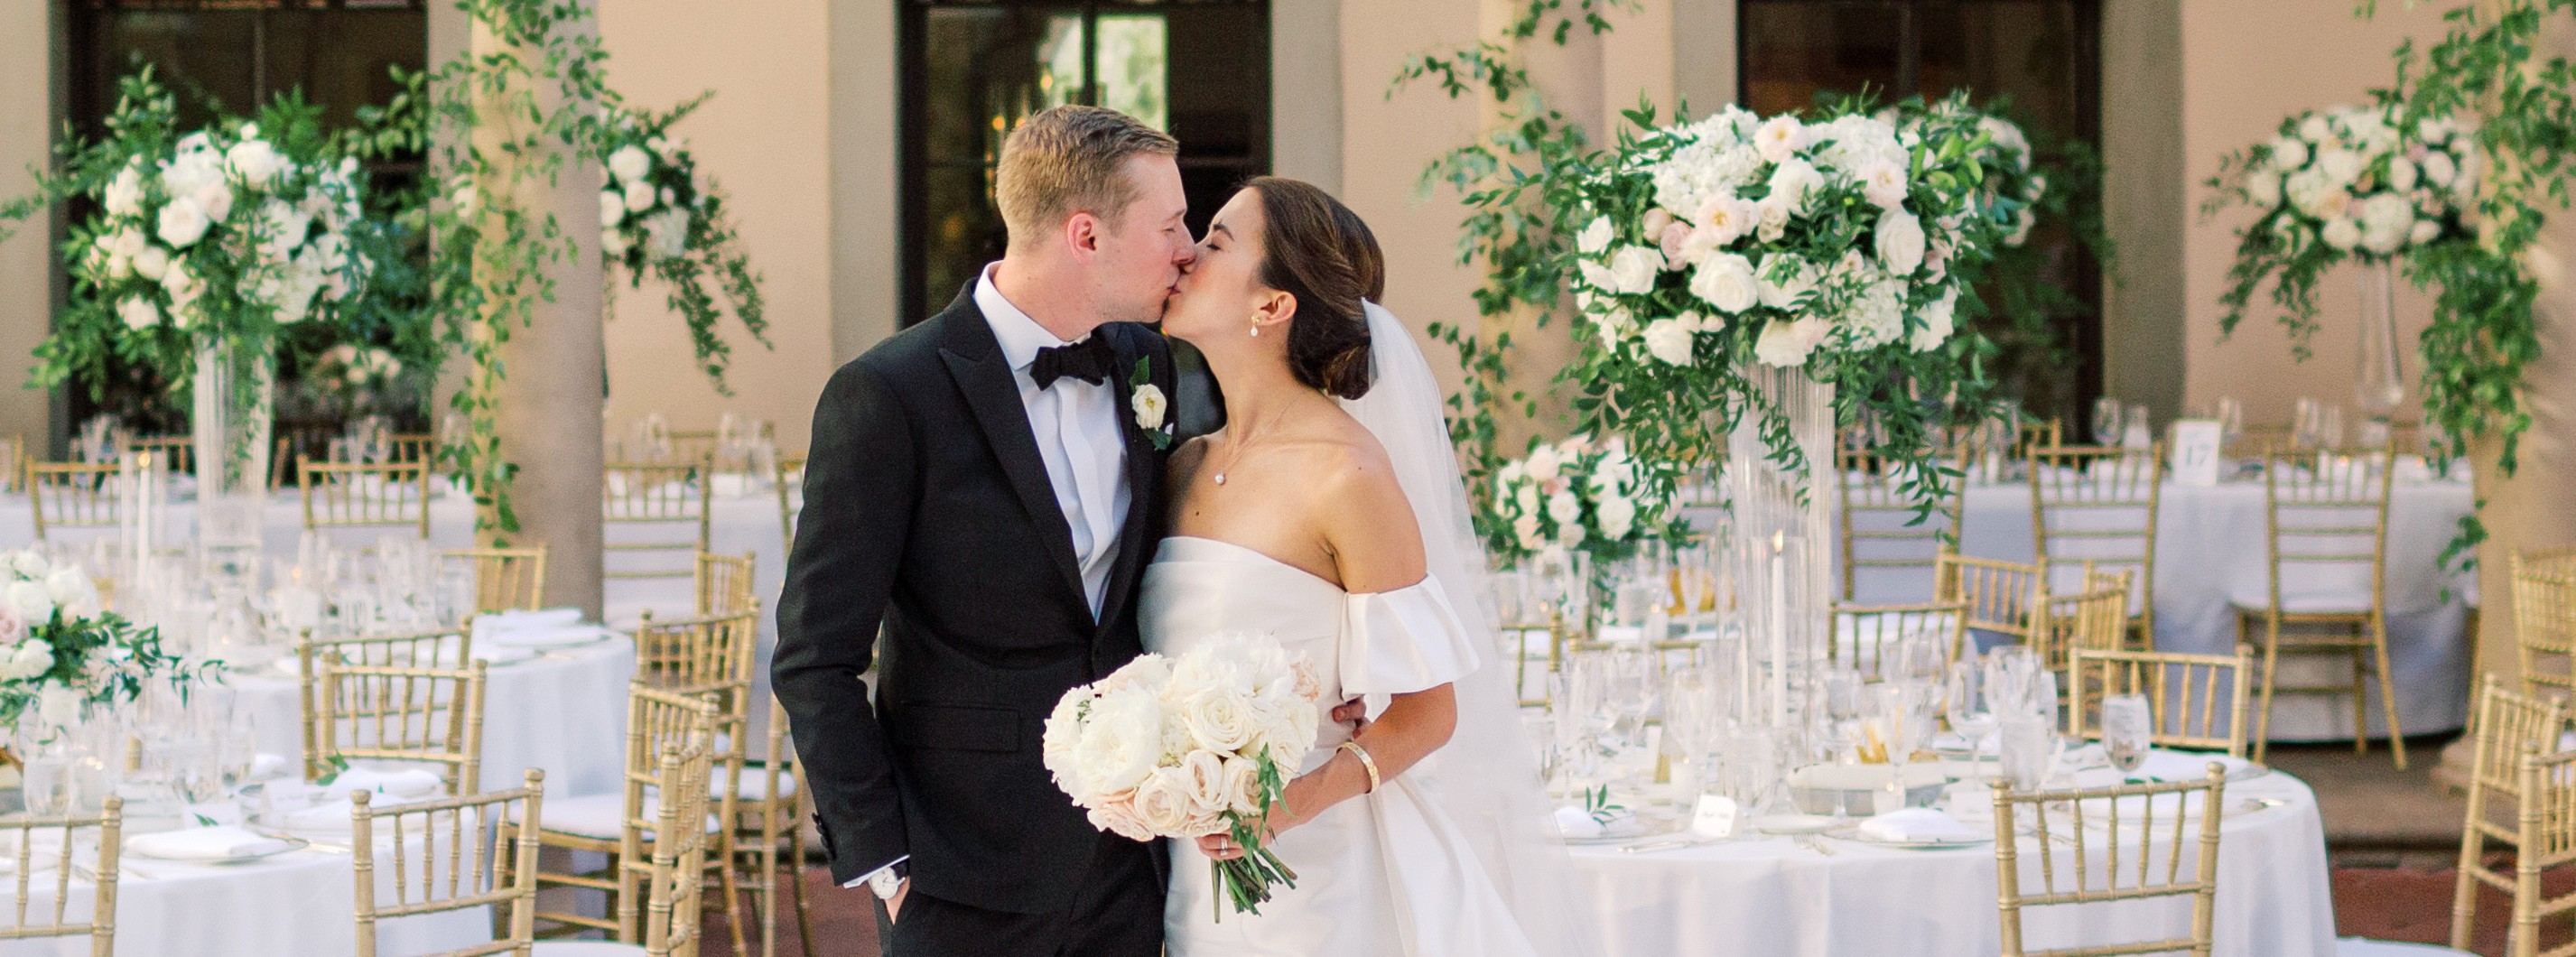 caltech athenaeum bride and groom wedding reception